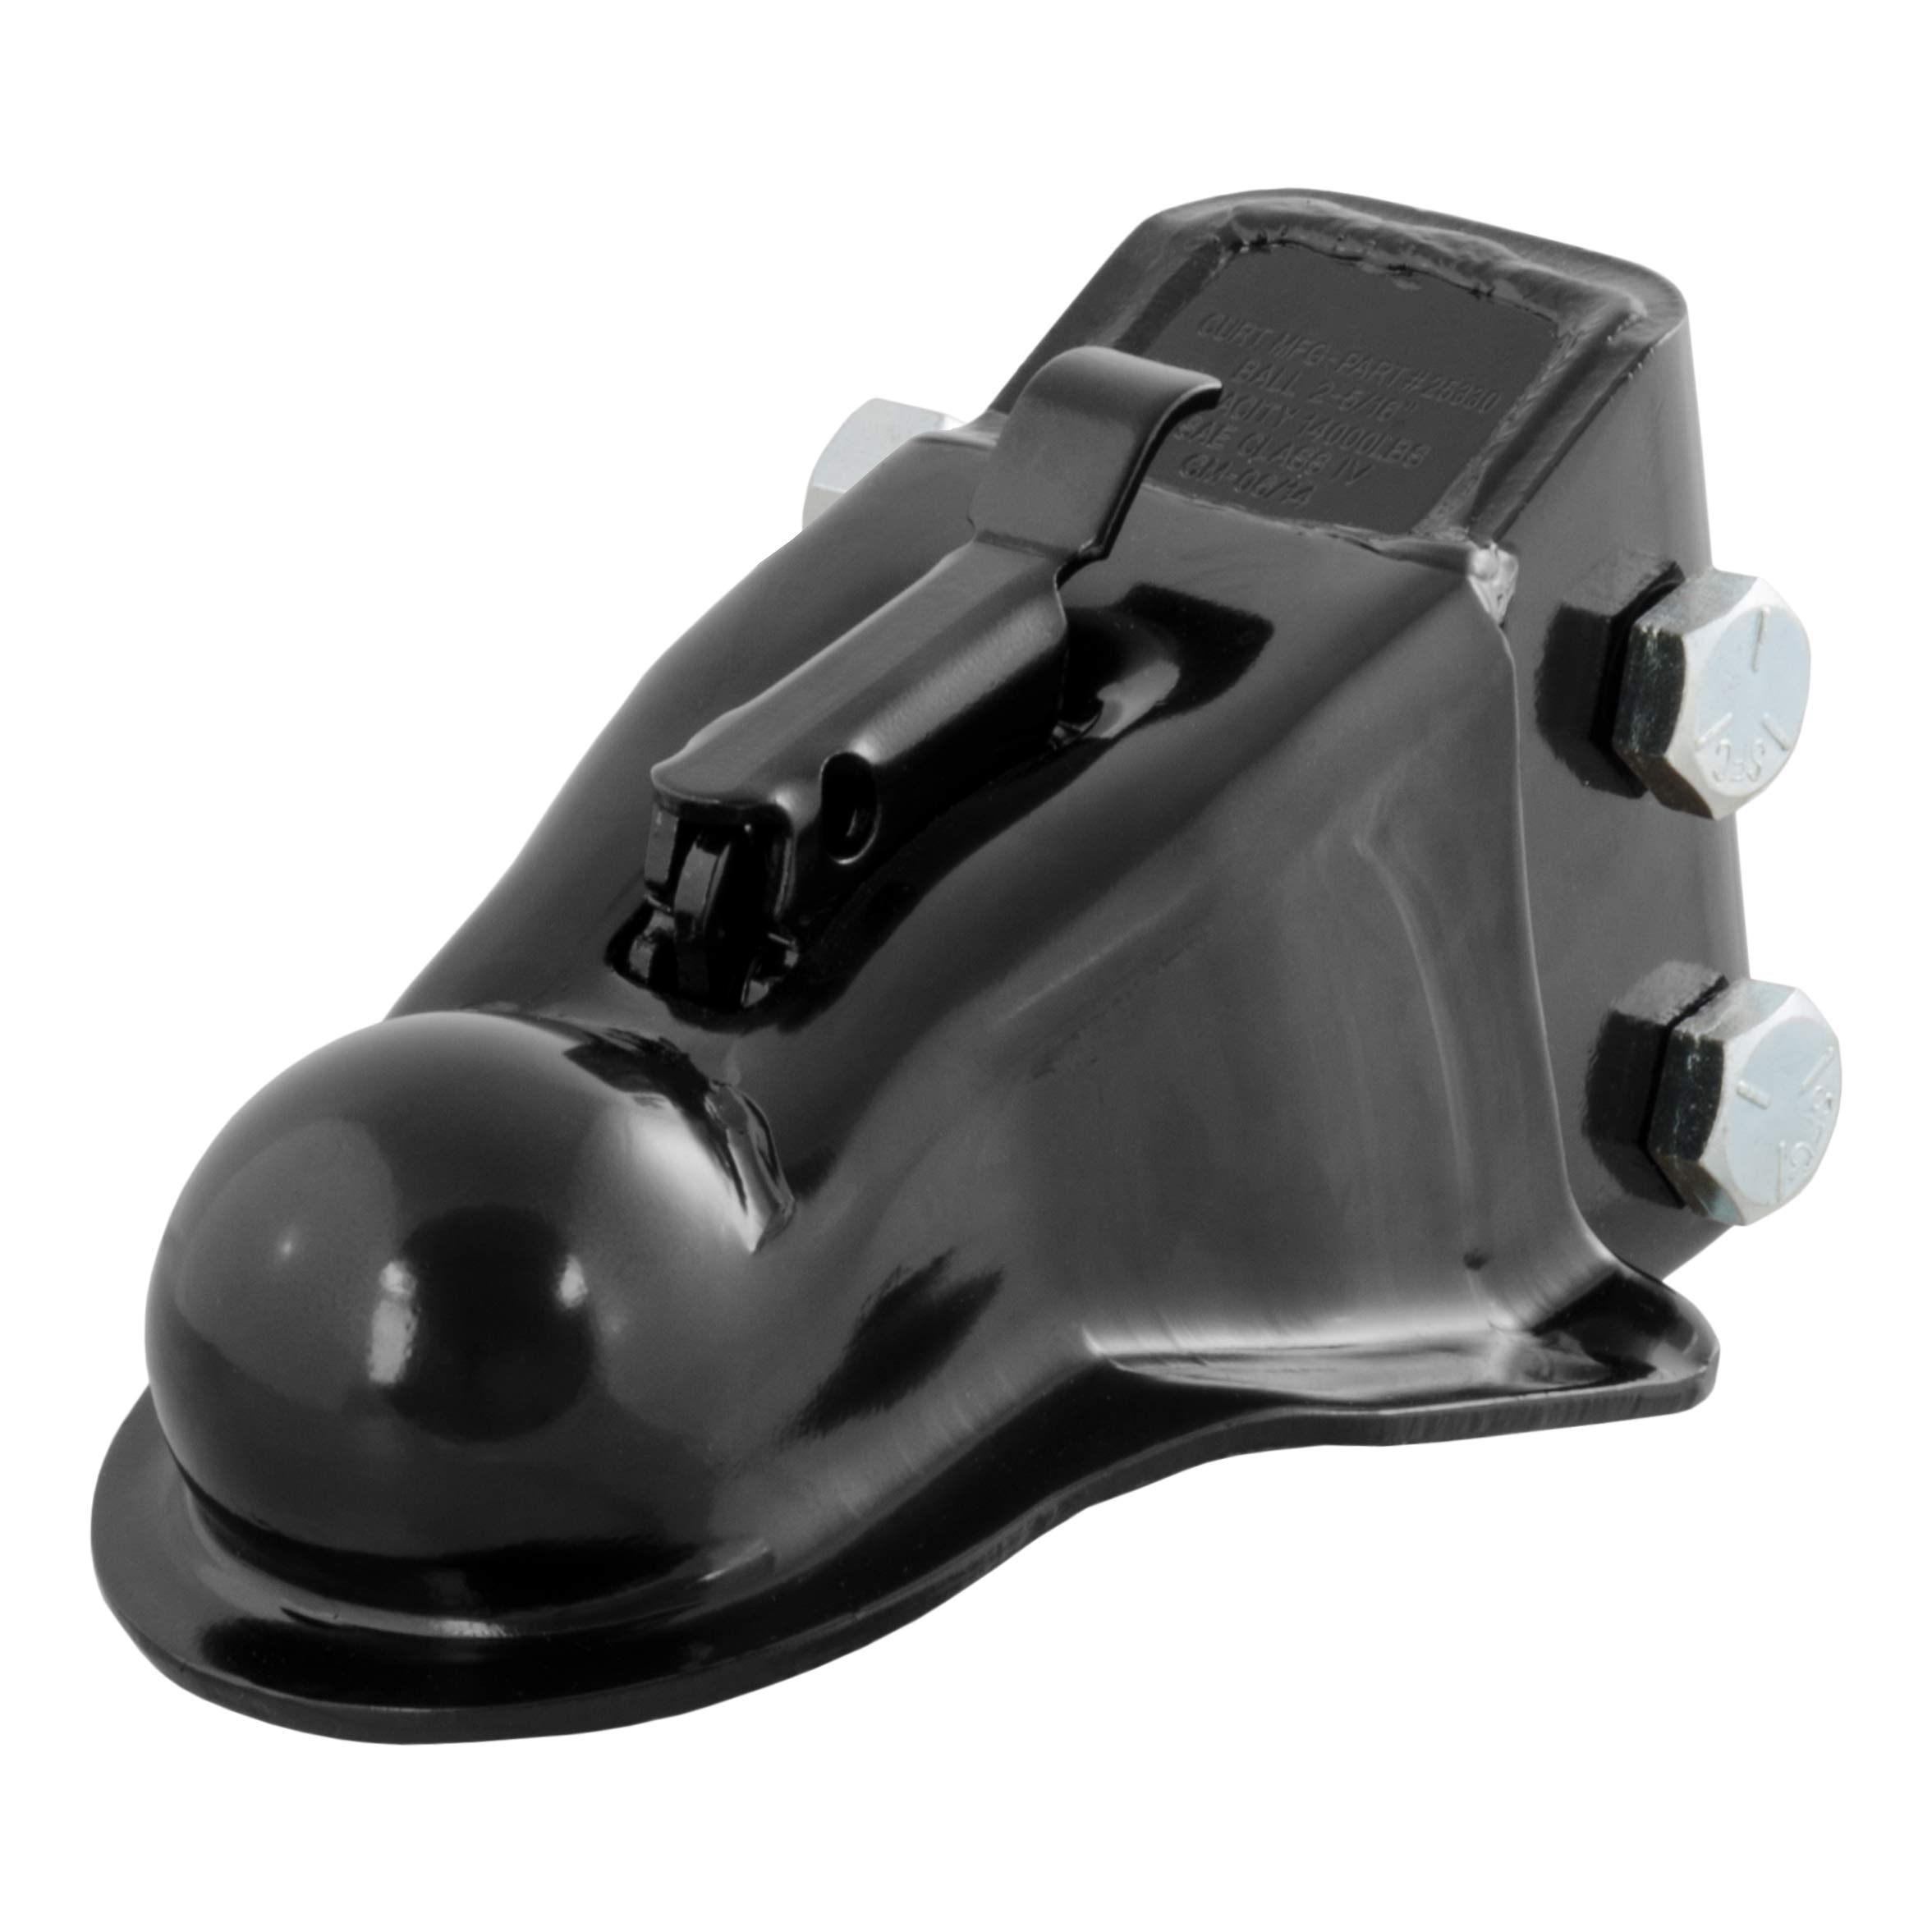 CURT 25330 Channel-Mount Adjustable Trailer Coupler Accepts 2-5/16-Inch Hitch Ball, 14,000 lbs by CURT